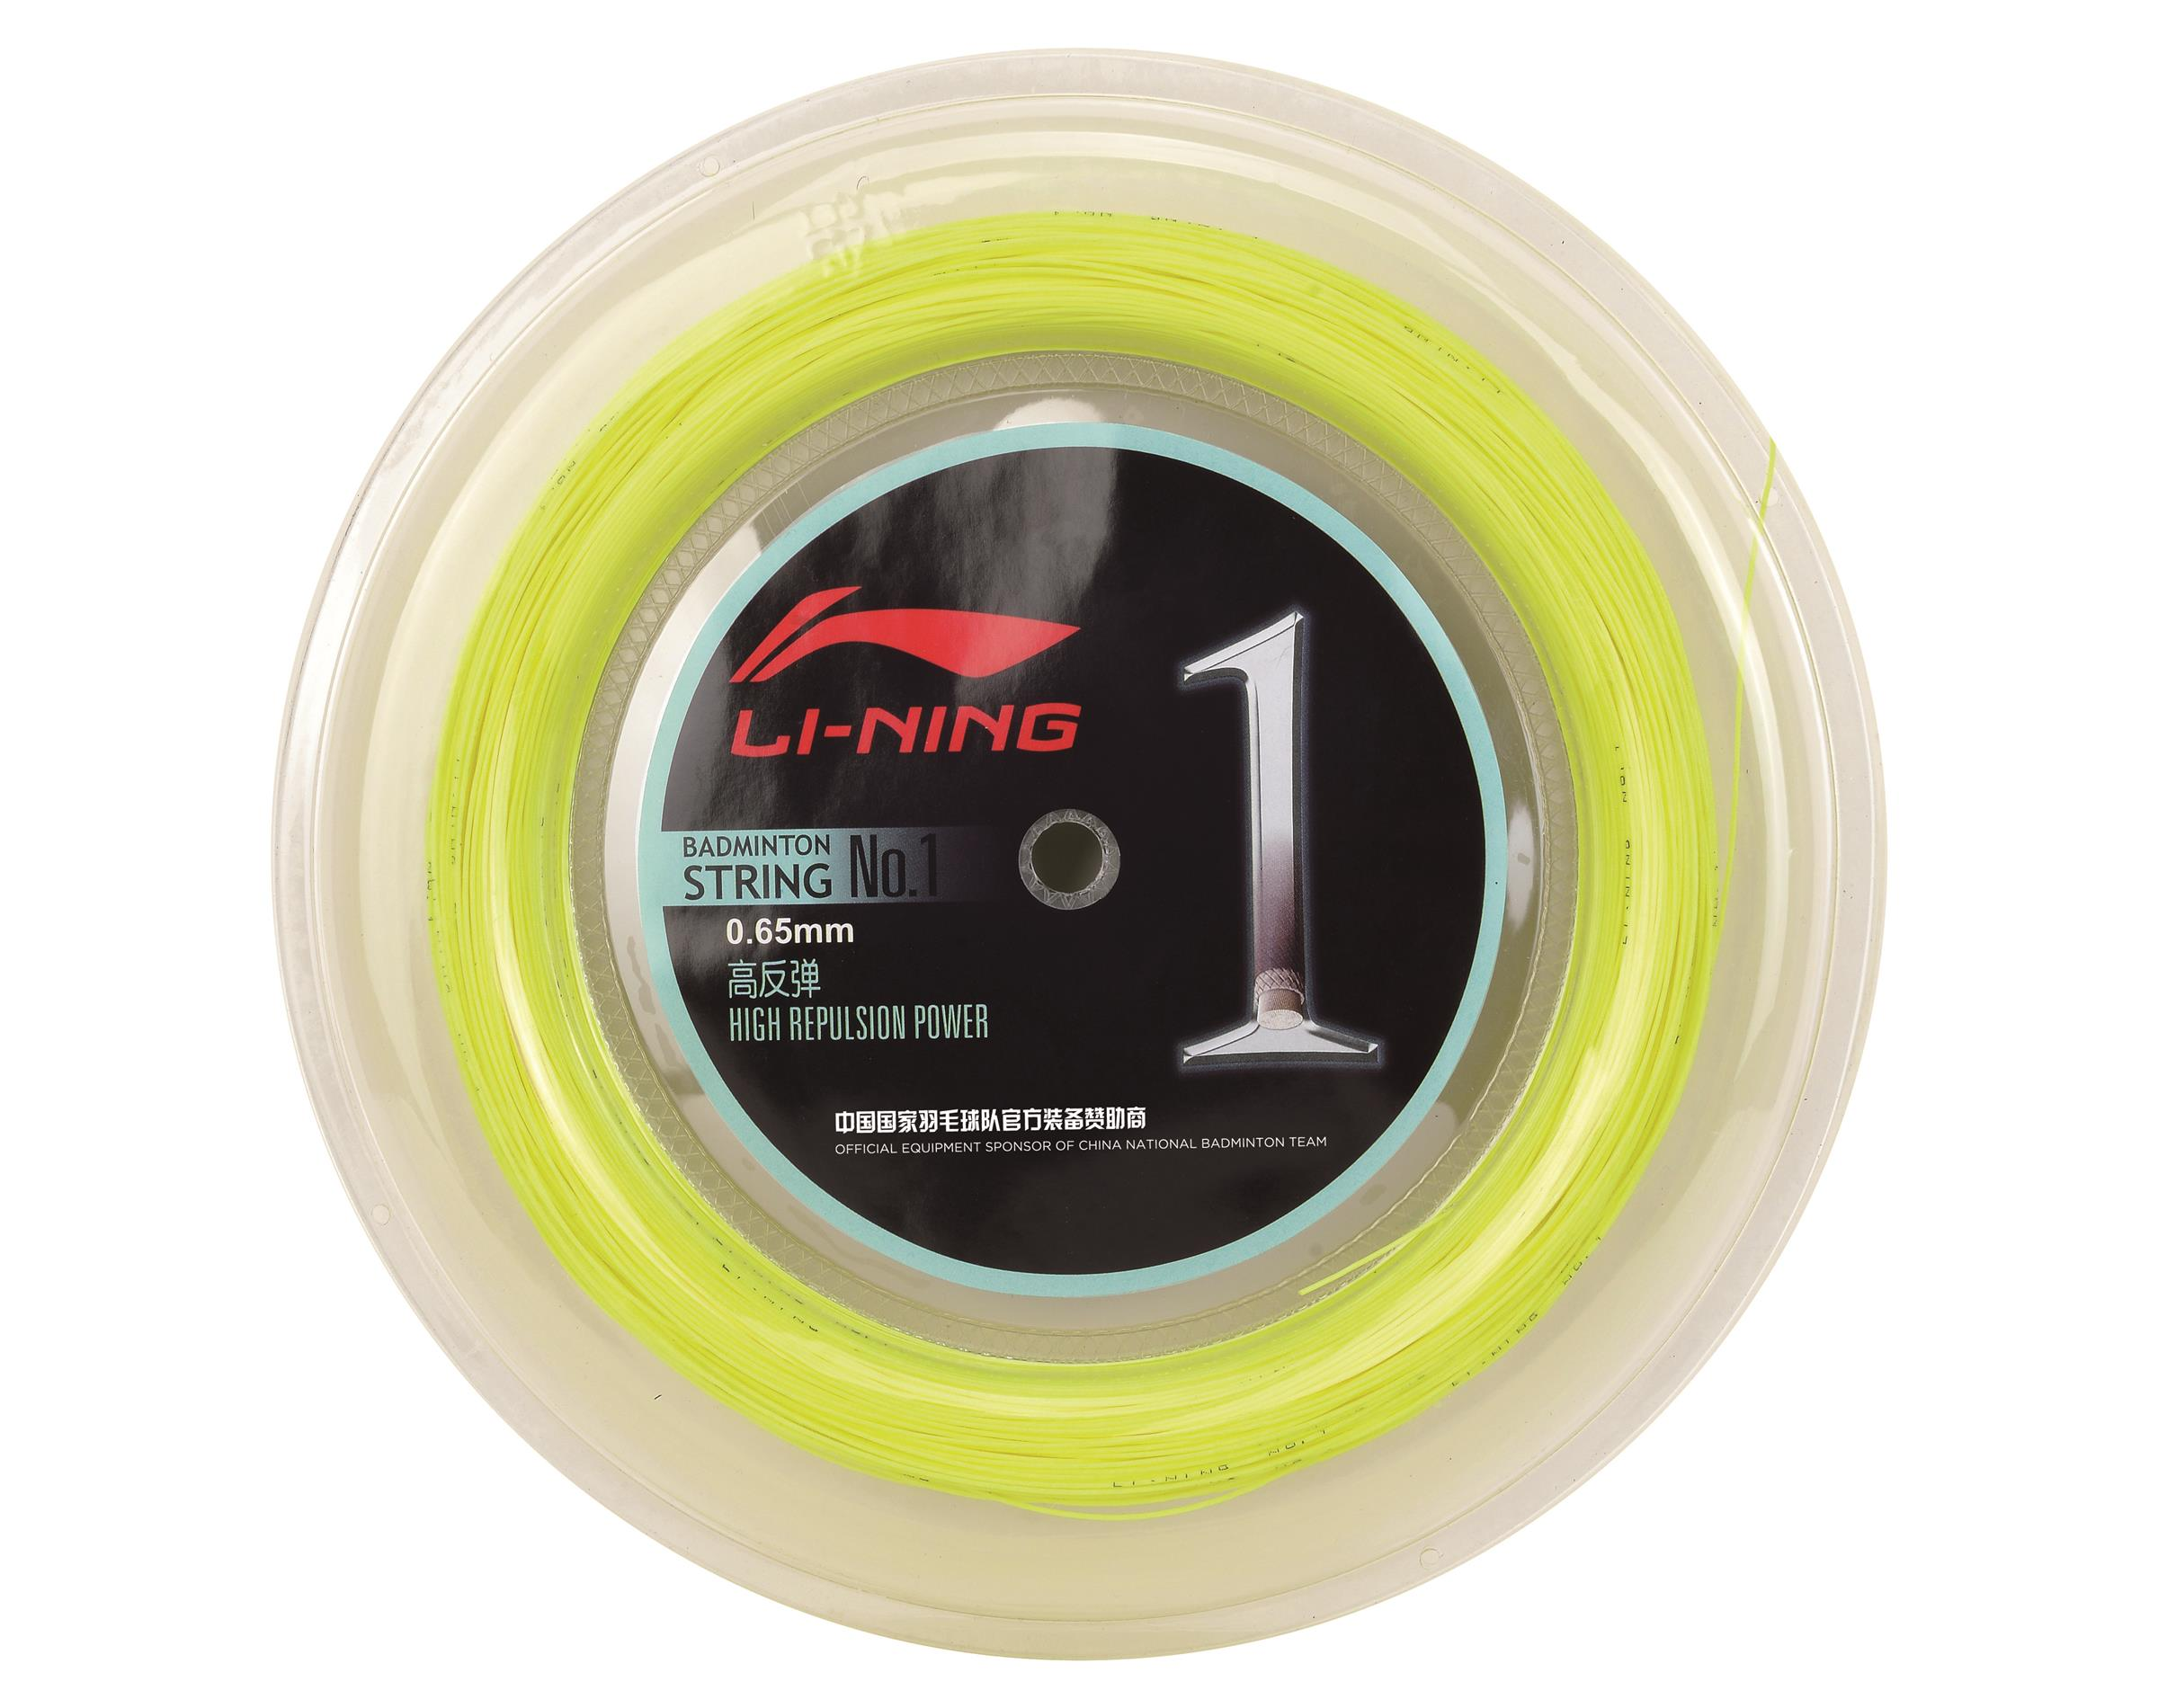 Li-Ning High-End rolle Bespannung Saite No.1 Badmintonstring 200m reel rolle High-End string f8d2b1